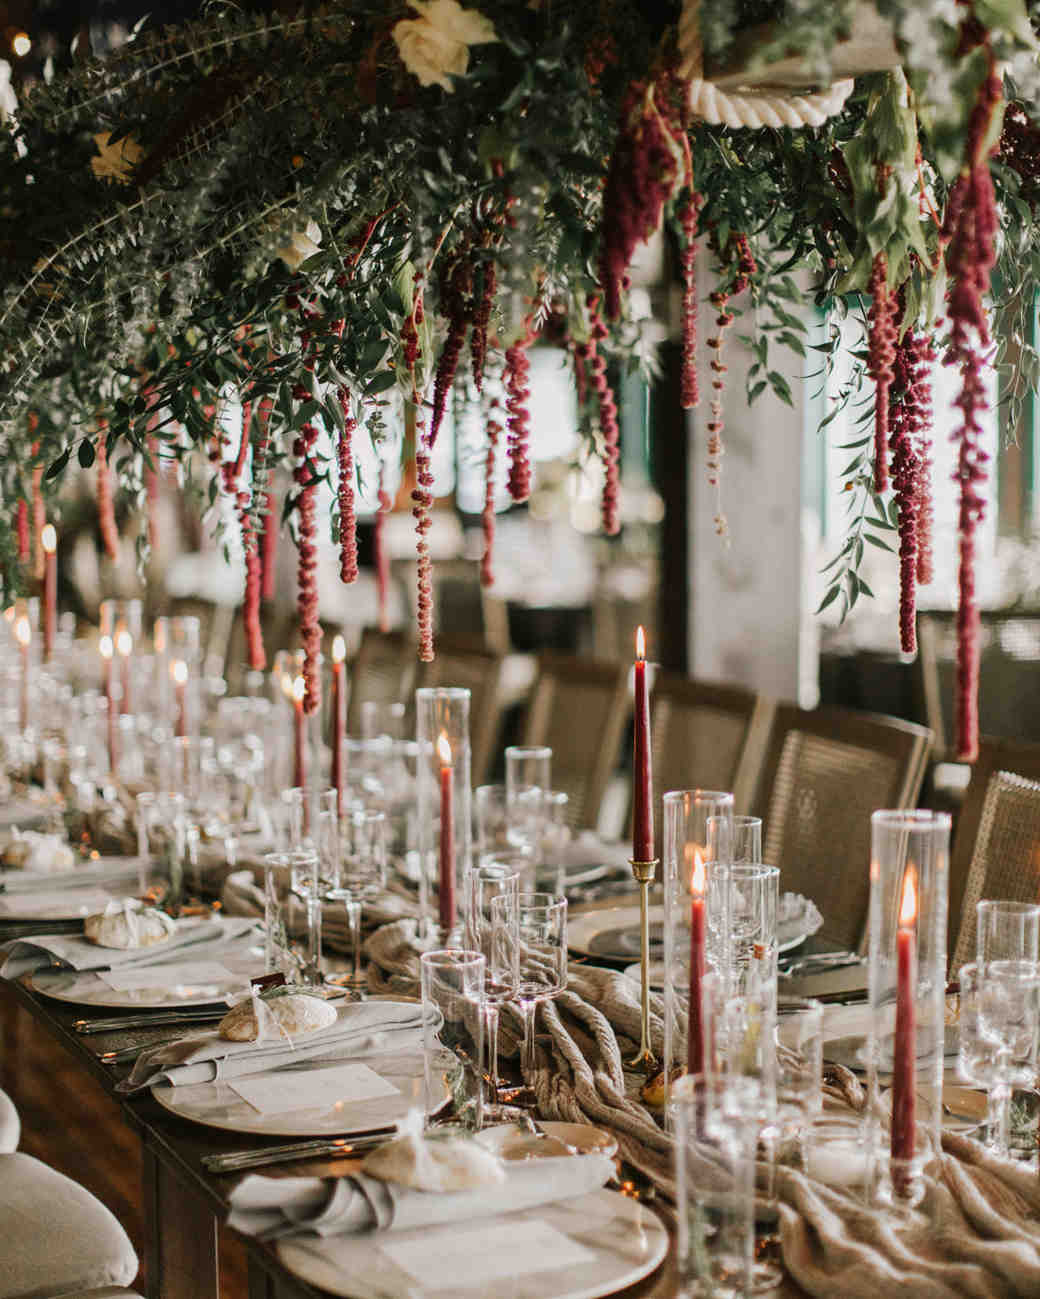 long wooden tables with gray runners, red taper candles in glass holders and hanging greenery